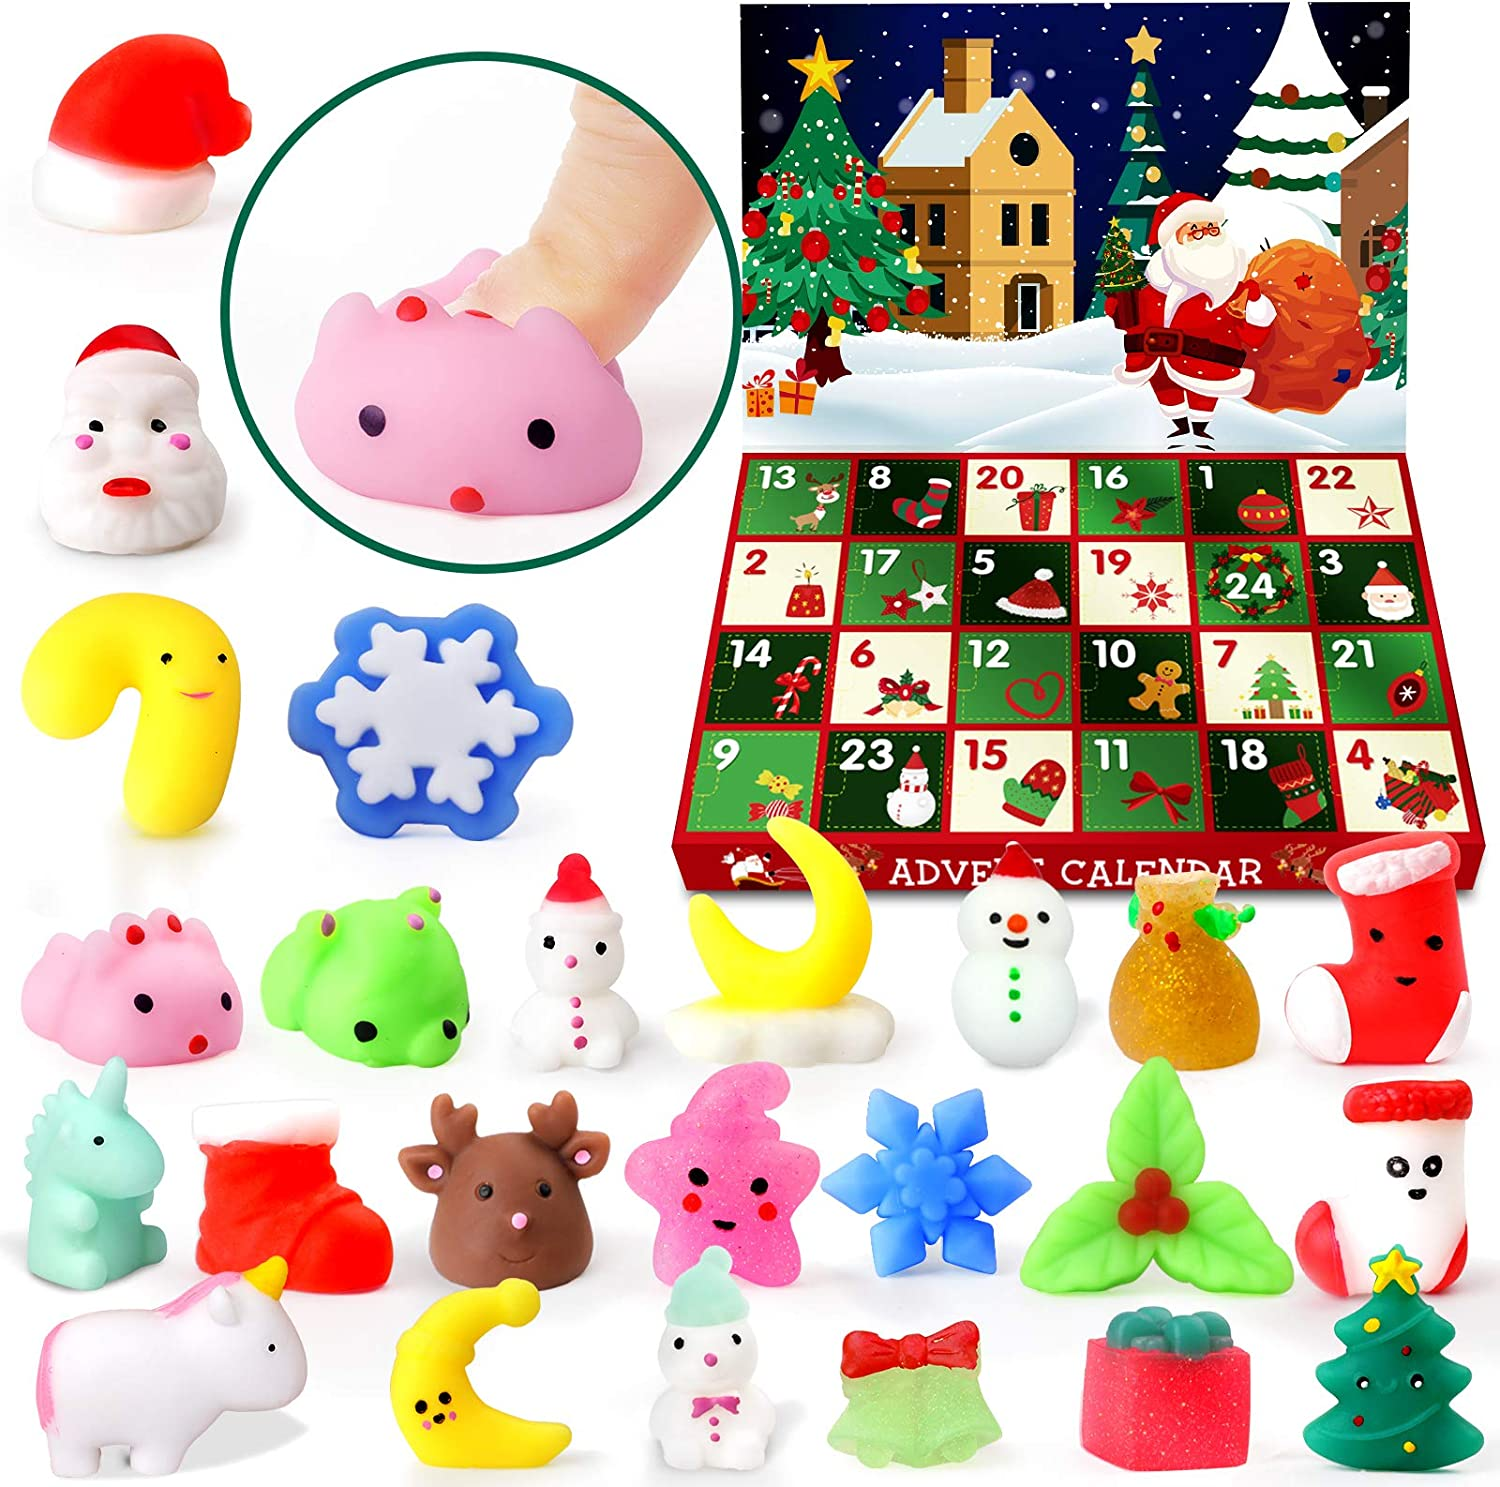 HINZER Advent Calendar 2020 for Kids and Adults Xmas Mochi Squishies Xmas Gift for Kids Surprise Xmas Present Xmas Advent Calendars for Friends Teen Girls Boys Count Down to Xmas 24 Pcs